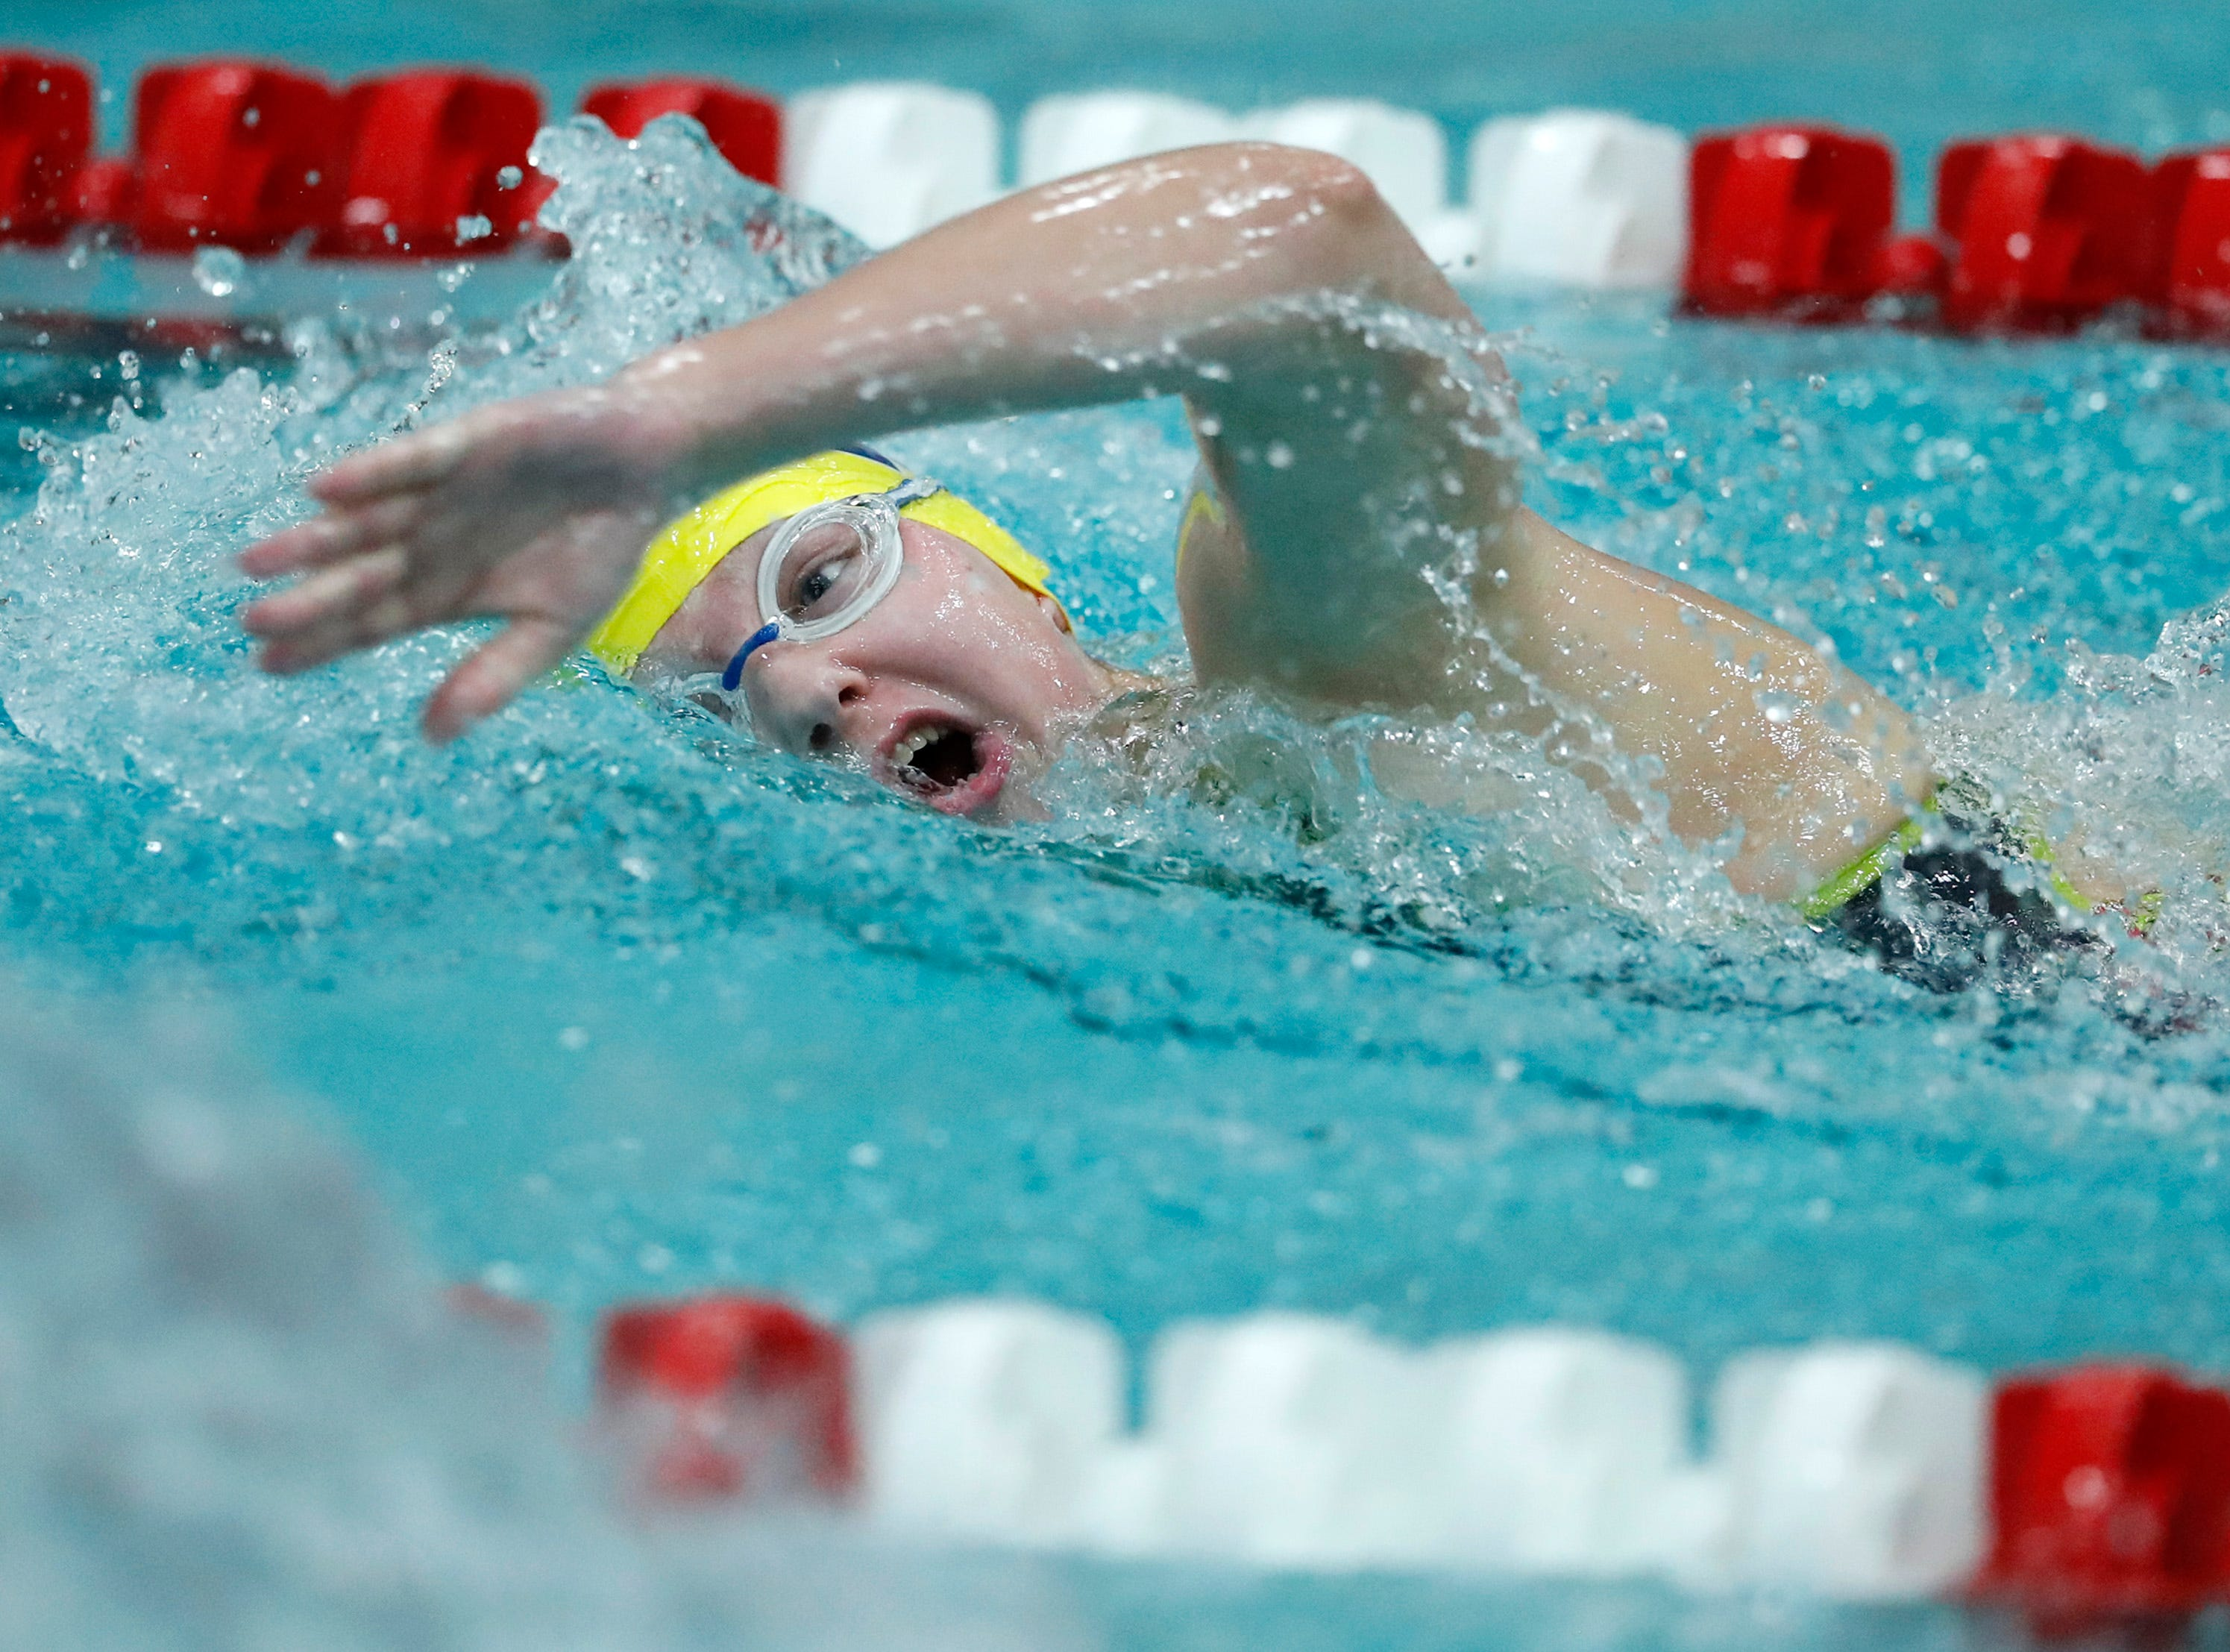 Tomahawk's Kylee Theiler races in the 500 yard freestyle during the WIAA Division 2 State Swimming and Diving meet Friday, Nov. 9, 2018, at the UW Natatorium in Madison, Wis.Danny Damiani/USA TODAY NETWORK-Wisconsin